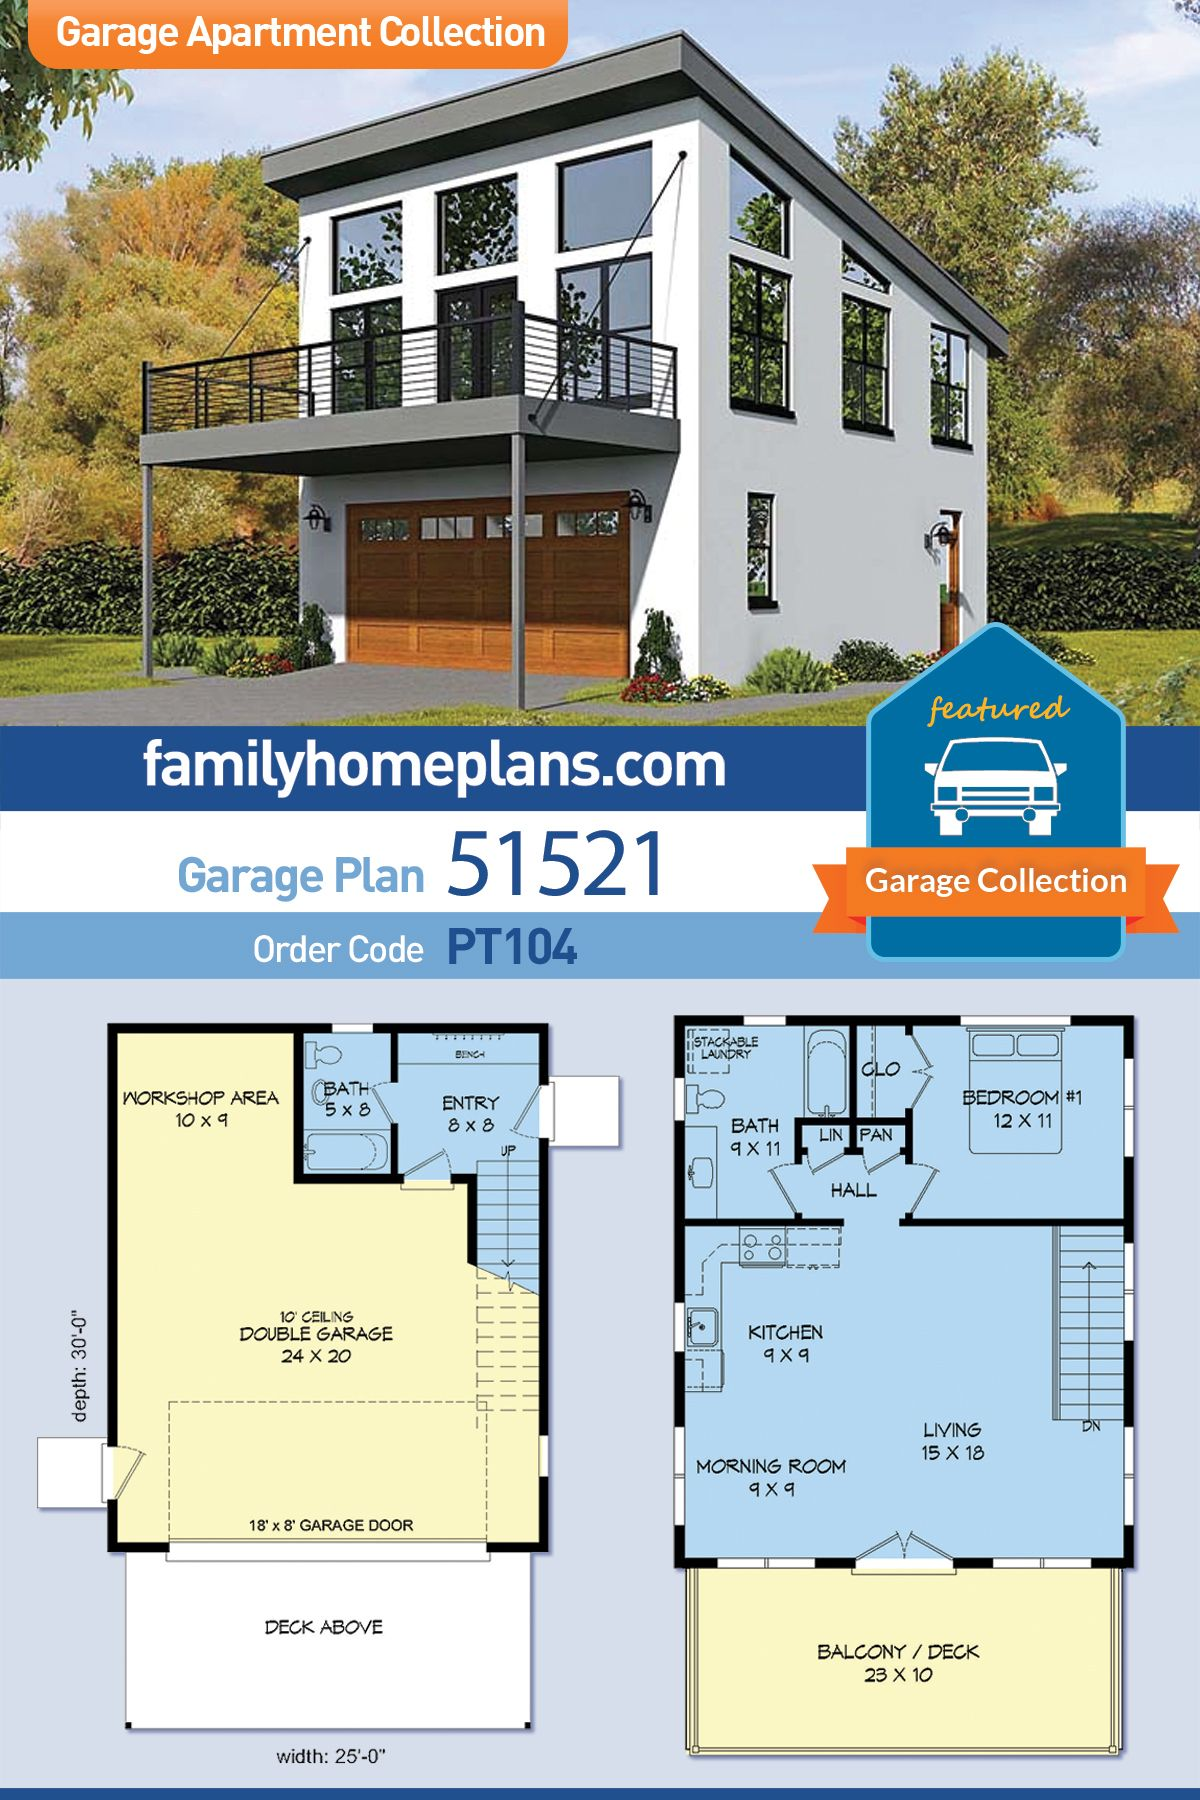 Modern Style Garage Living Plan 51521 With 1 Bed 2 Bath 2 Car Garage Carriage House Plans Garage Plans With Loft Garage Apartment Plan